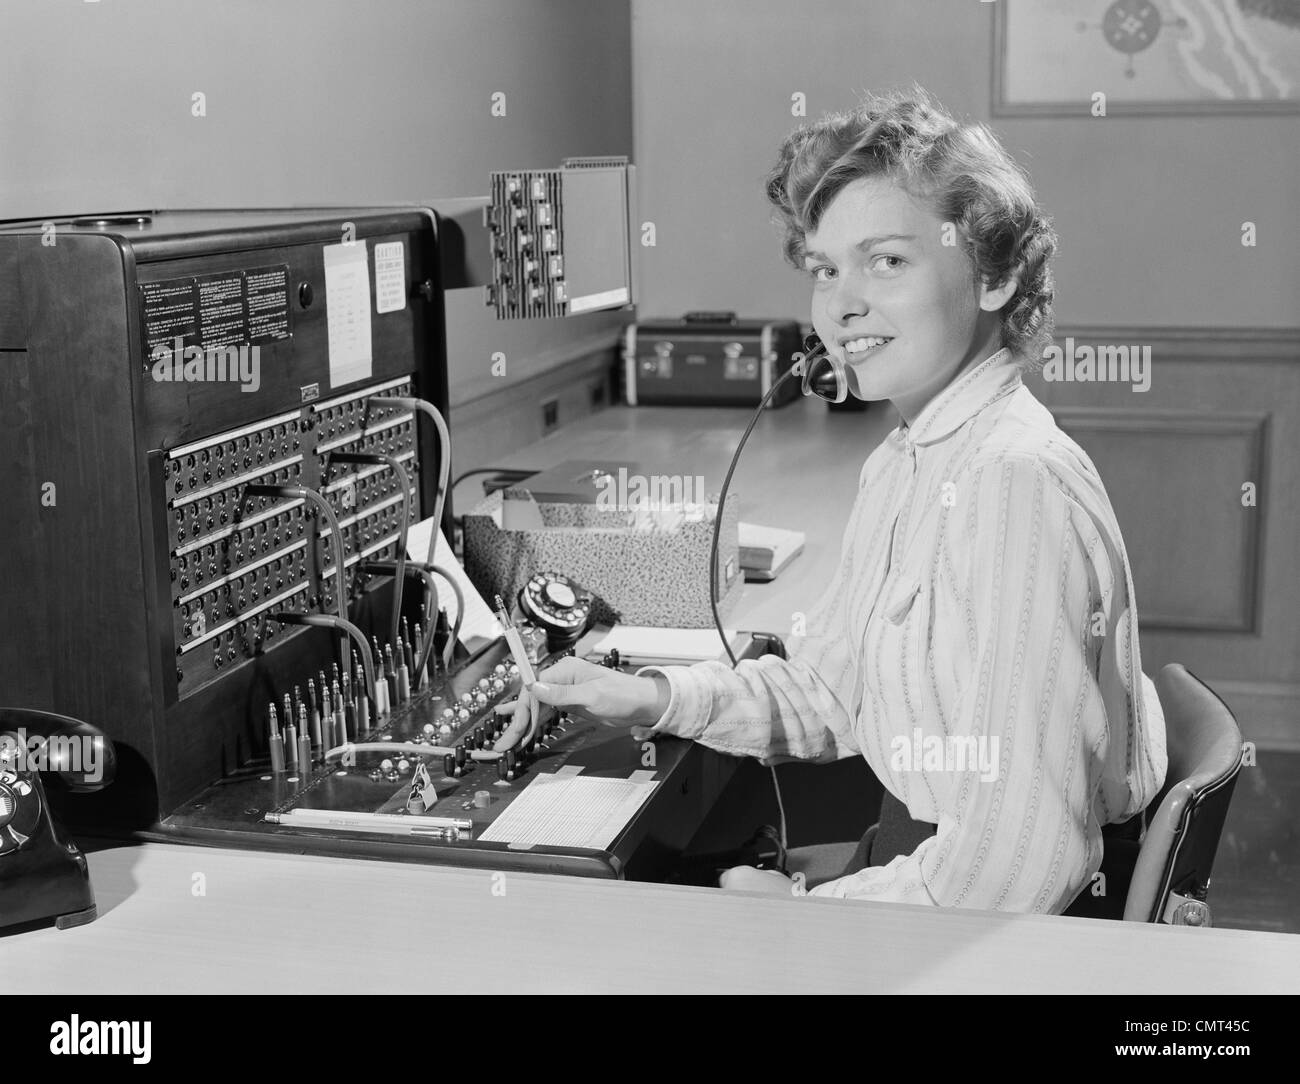 1950s smiling woman office